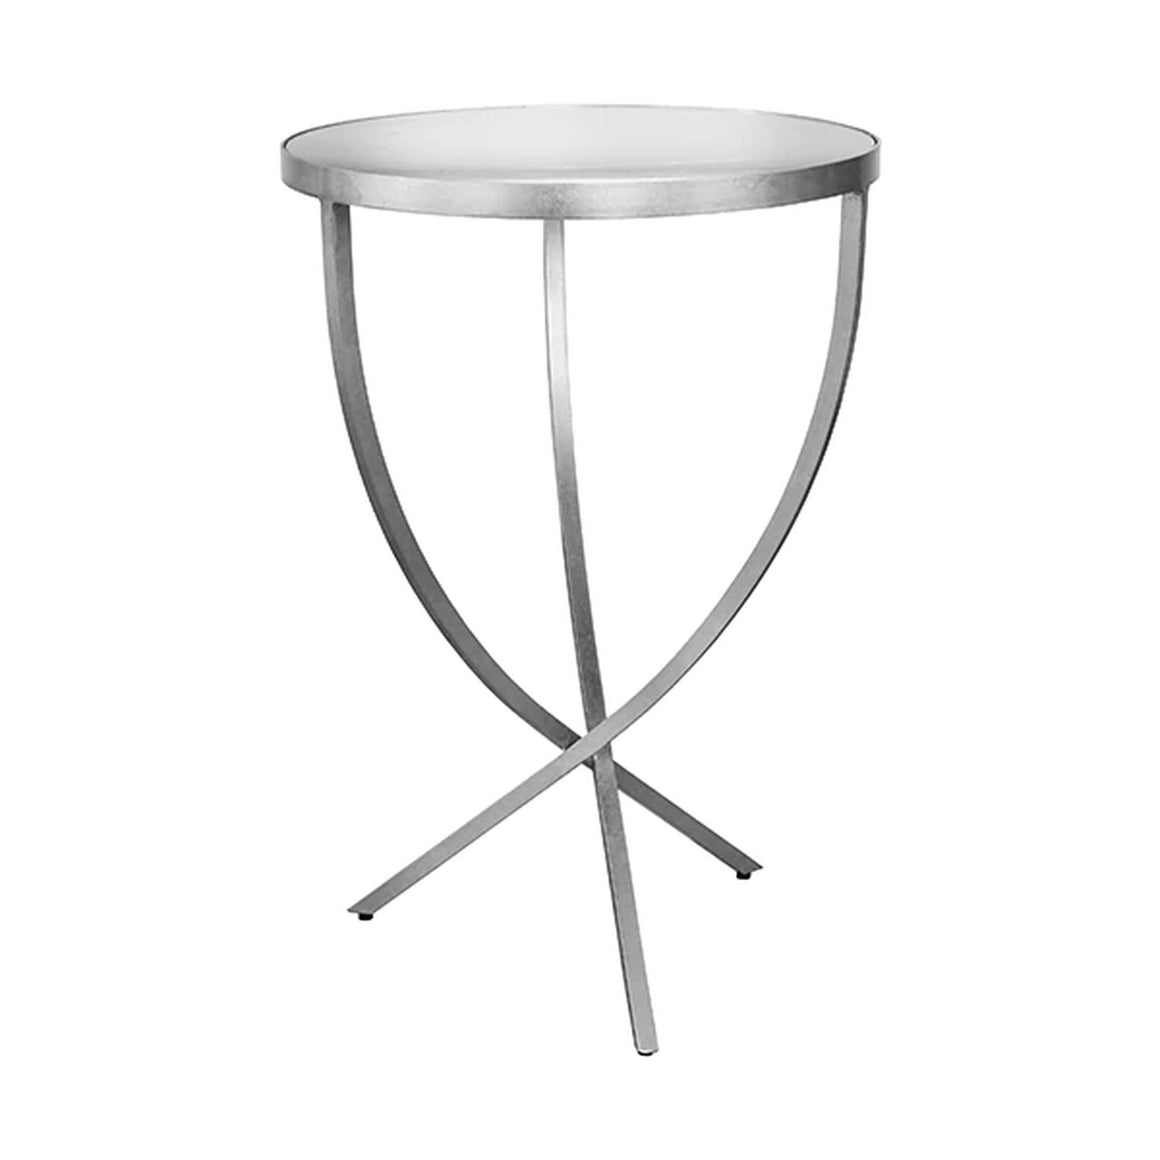 Worlds Away Round Cross Leg Side Table - Silver Leaf